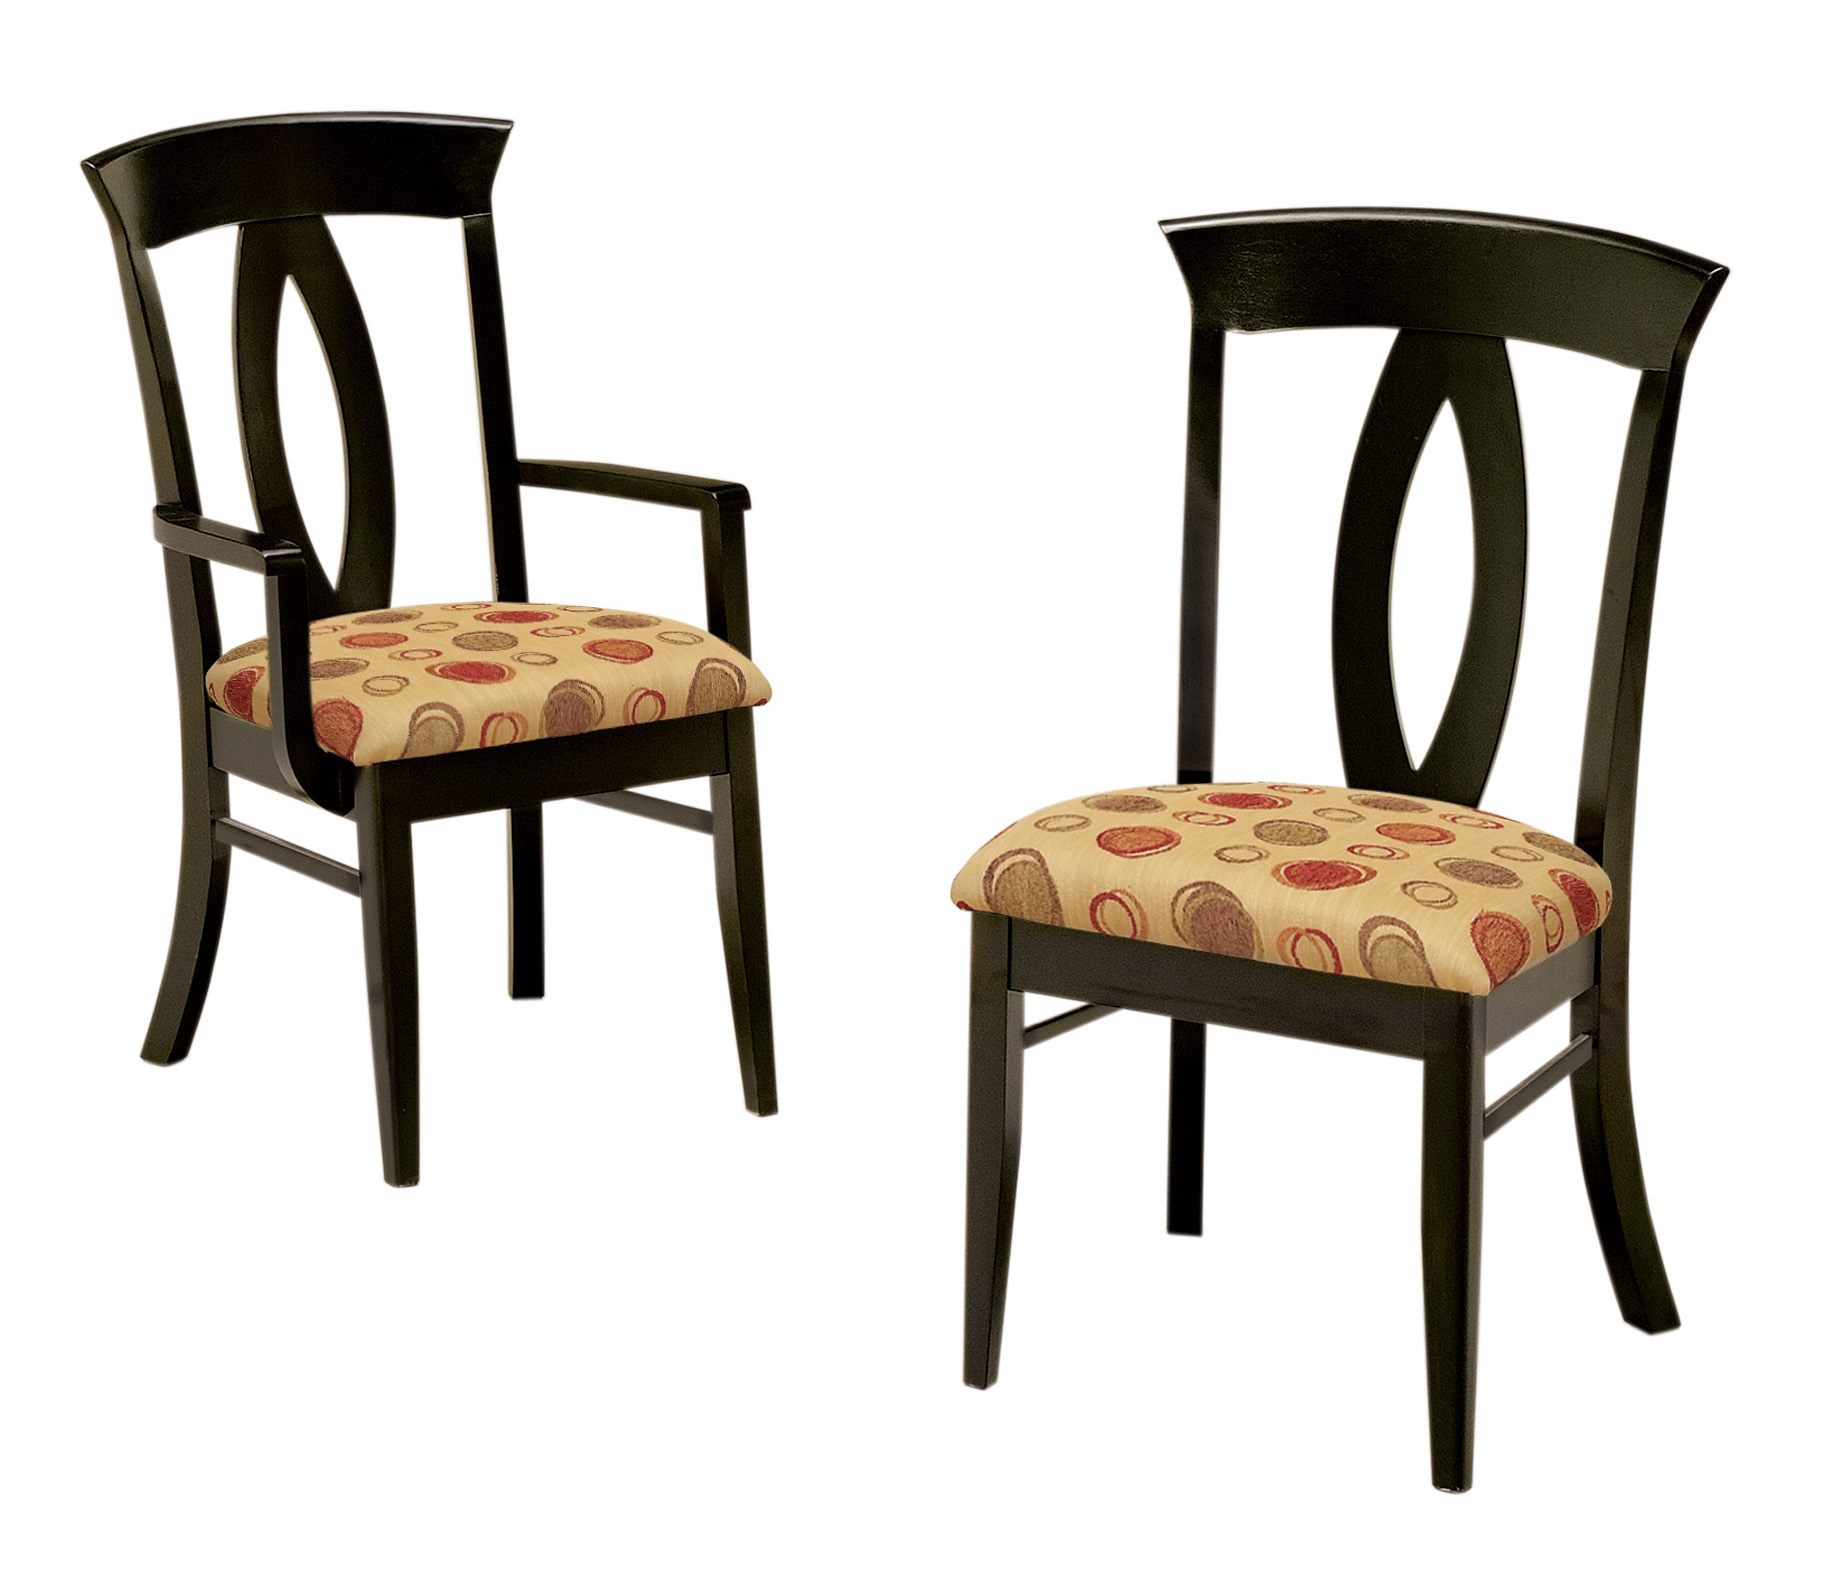 Upholstered dining room chairs large and beautiful for Dining room upholstered chairs